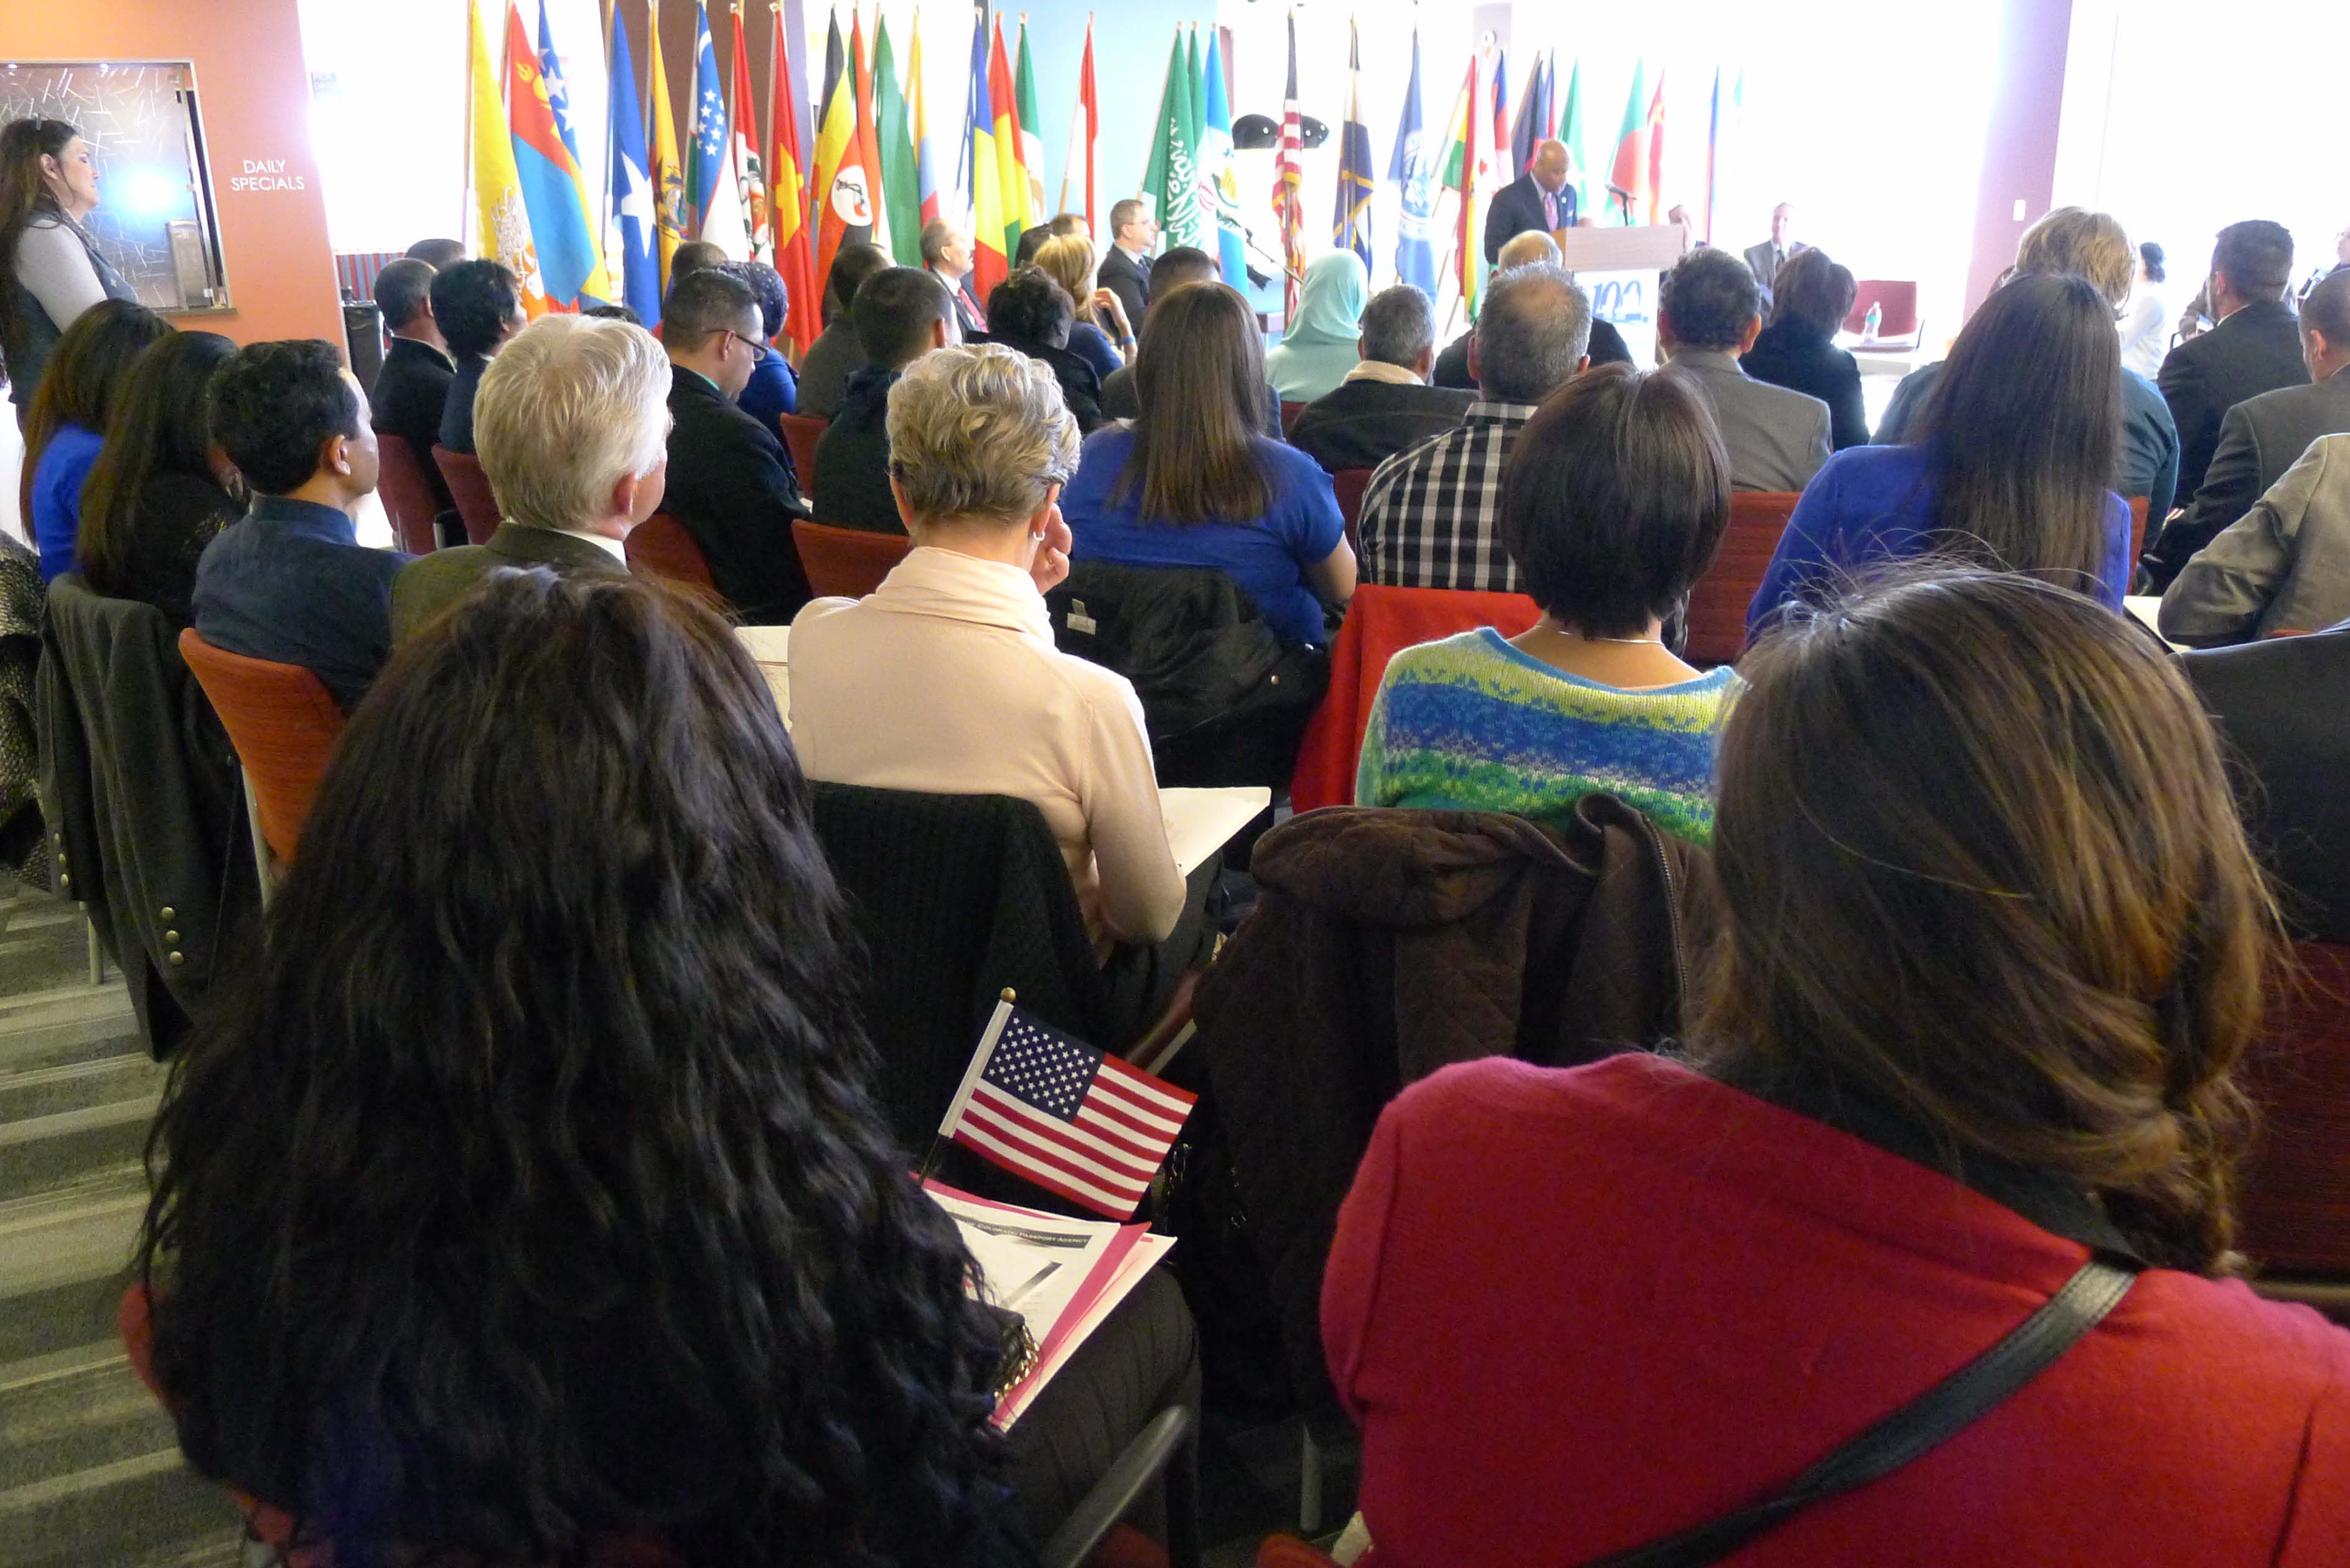 Denver's Mayor Michael B. Hancock welcomes the 100 applicants and their family members to the citizenship ceremony.